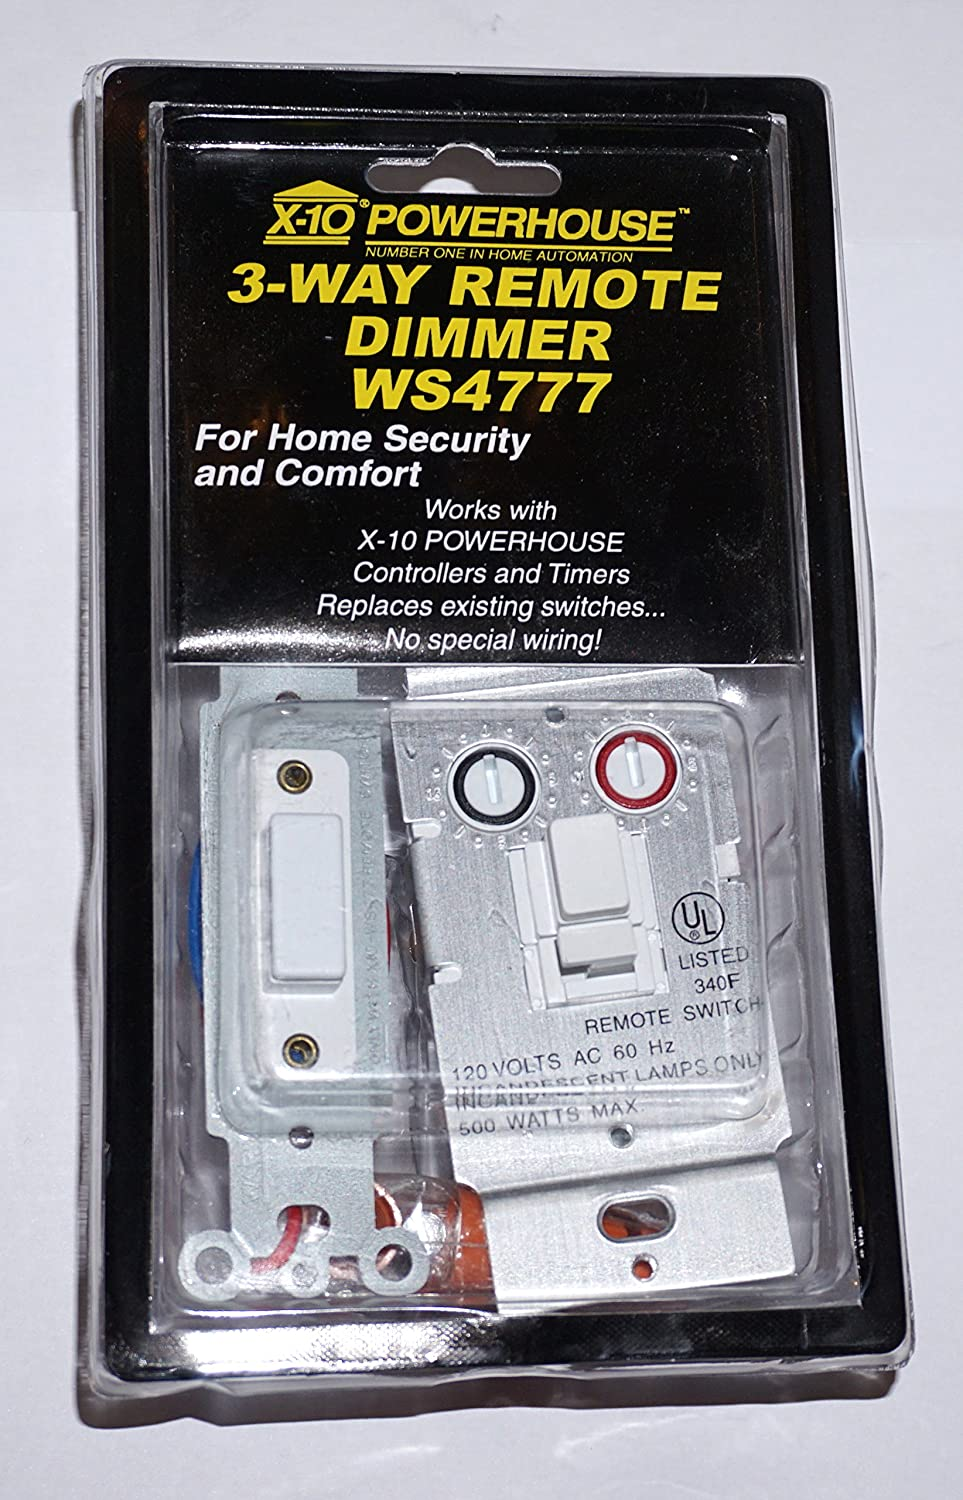 Amazon.com: X10 WS4777 3-WAY Remote Dimmer Switch: Camera & Photo